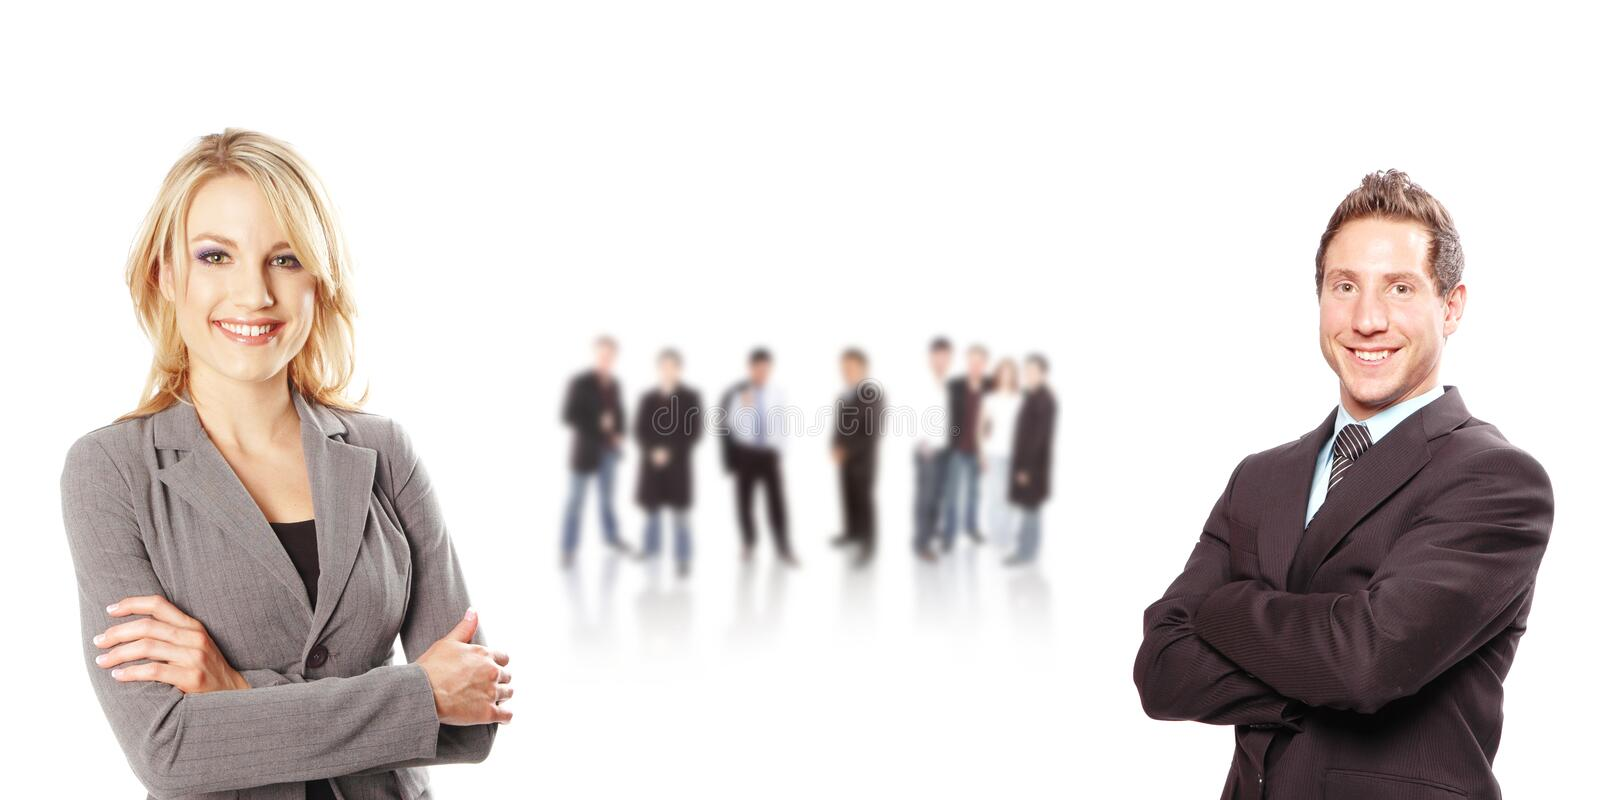 Business team. Is posing with its members royalty free stock images